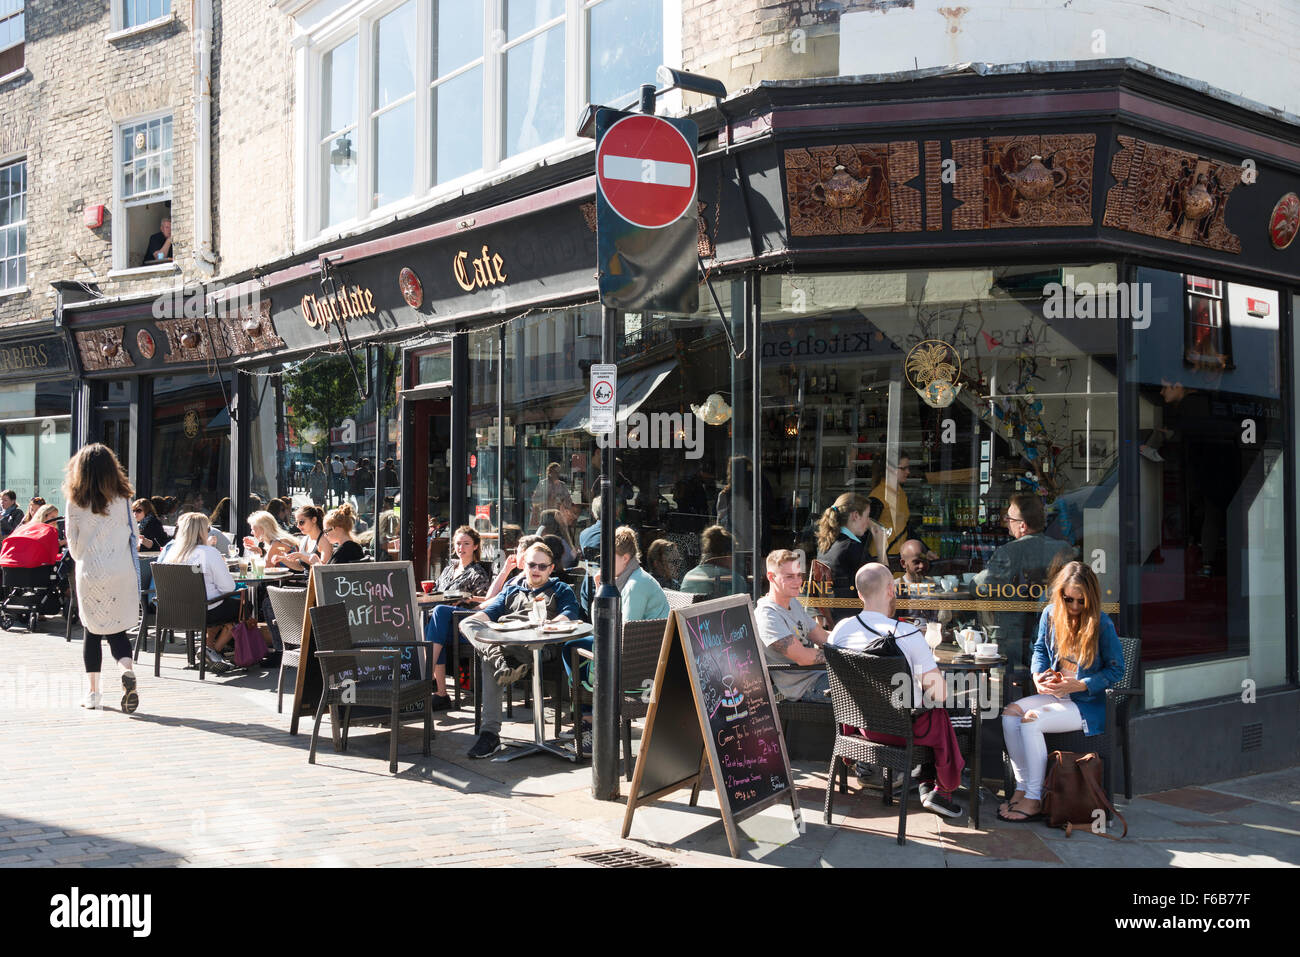 Chocolate Cafe Guildhall Street Canterbury Kent England